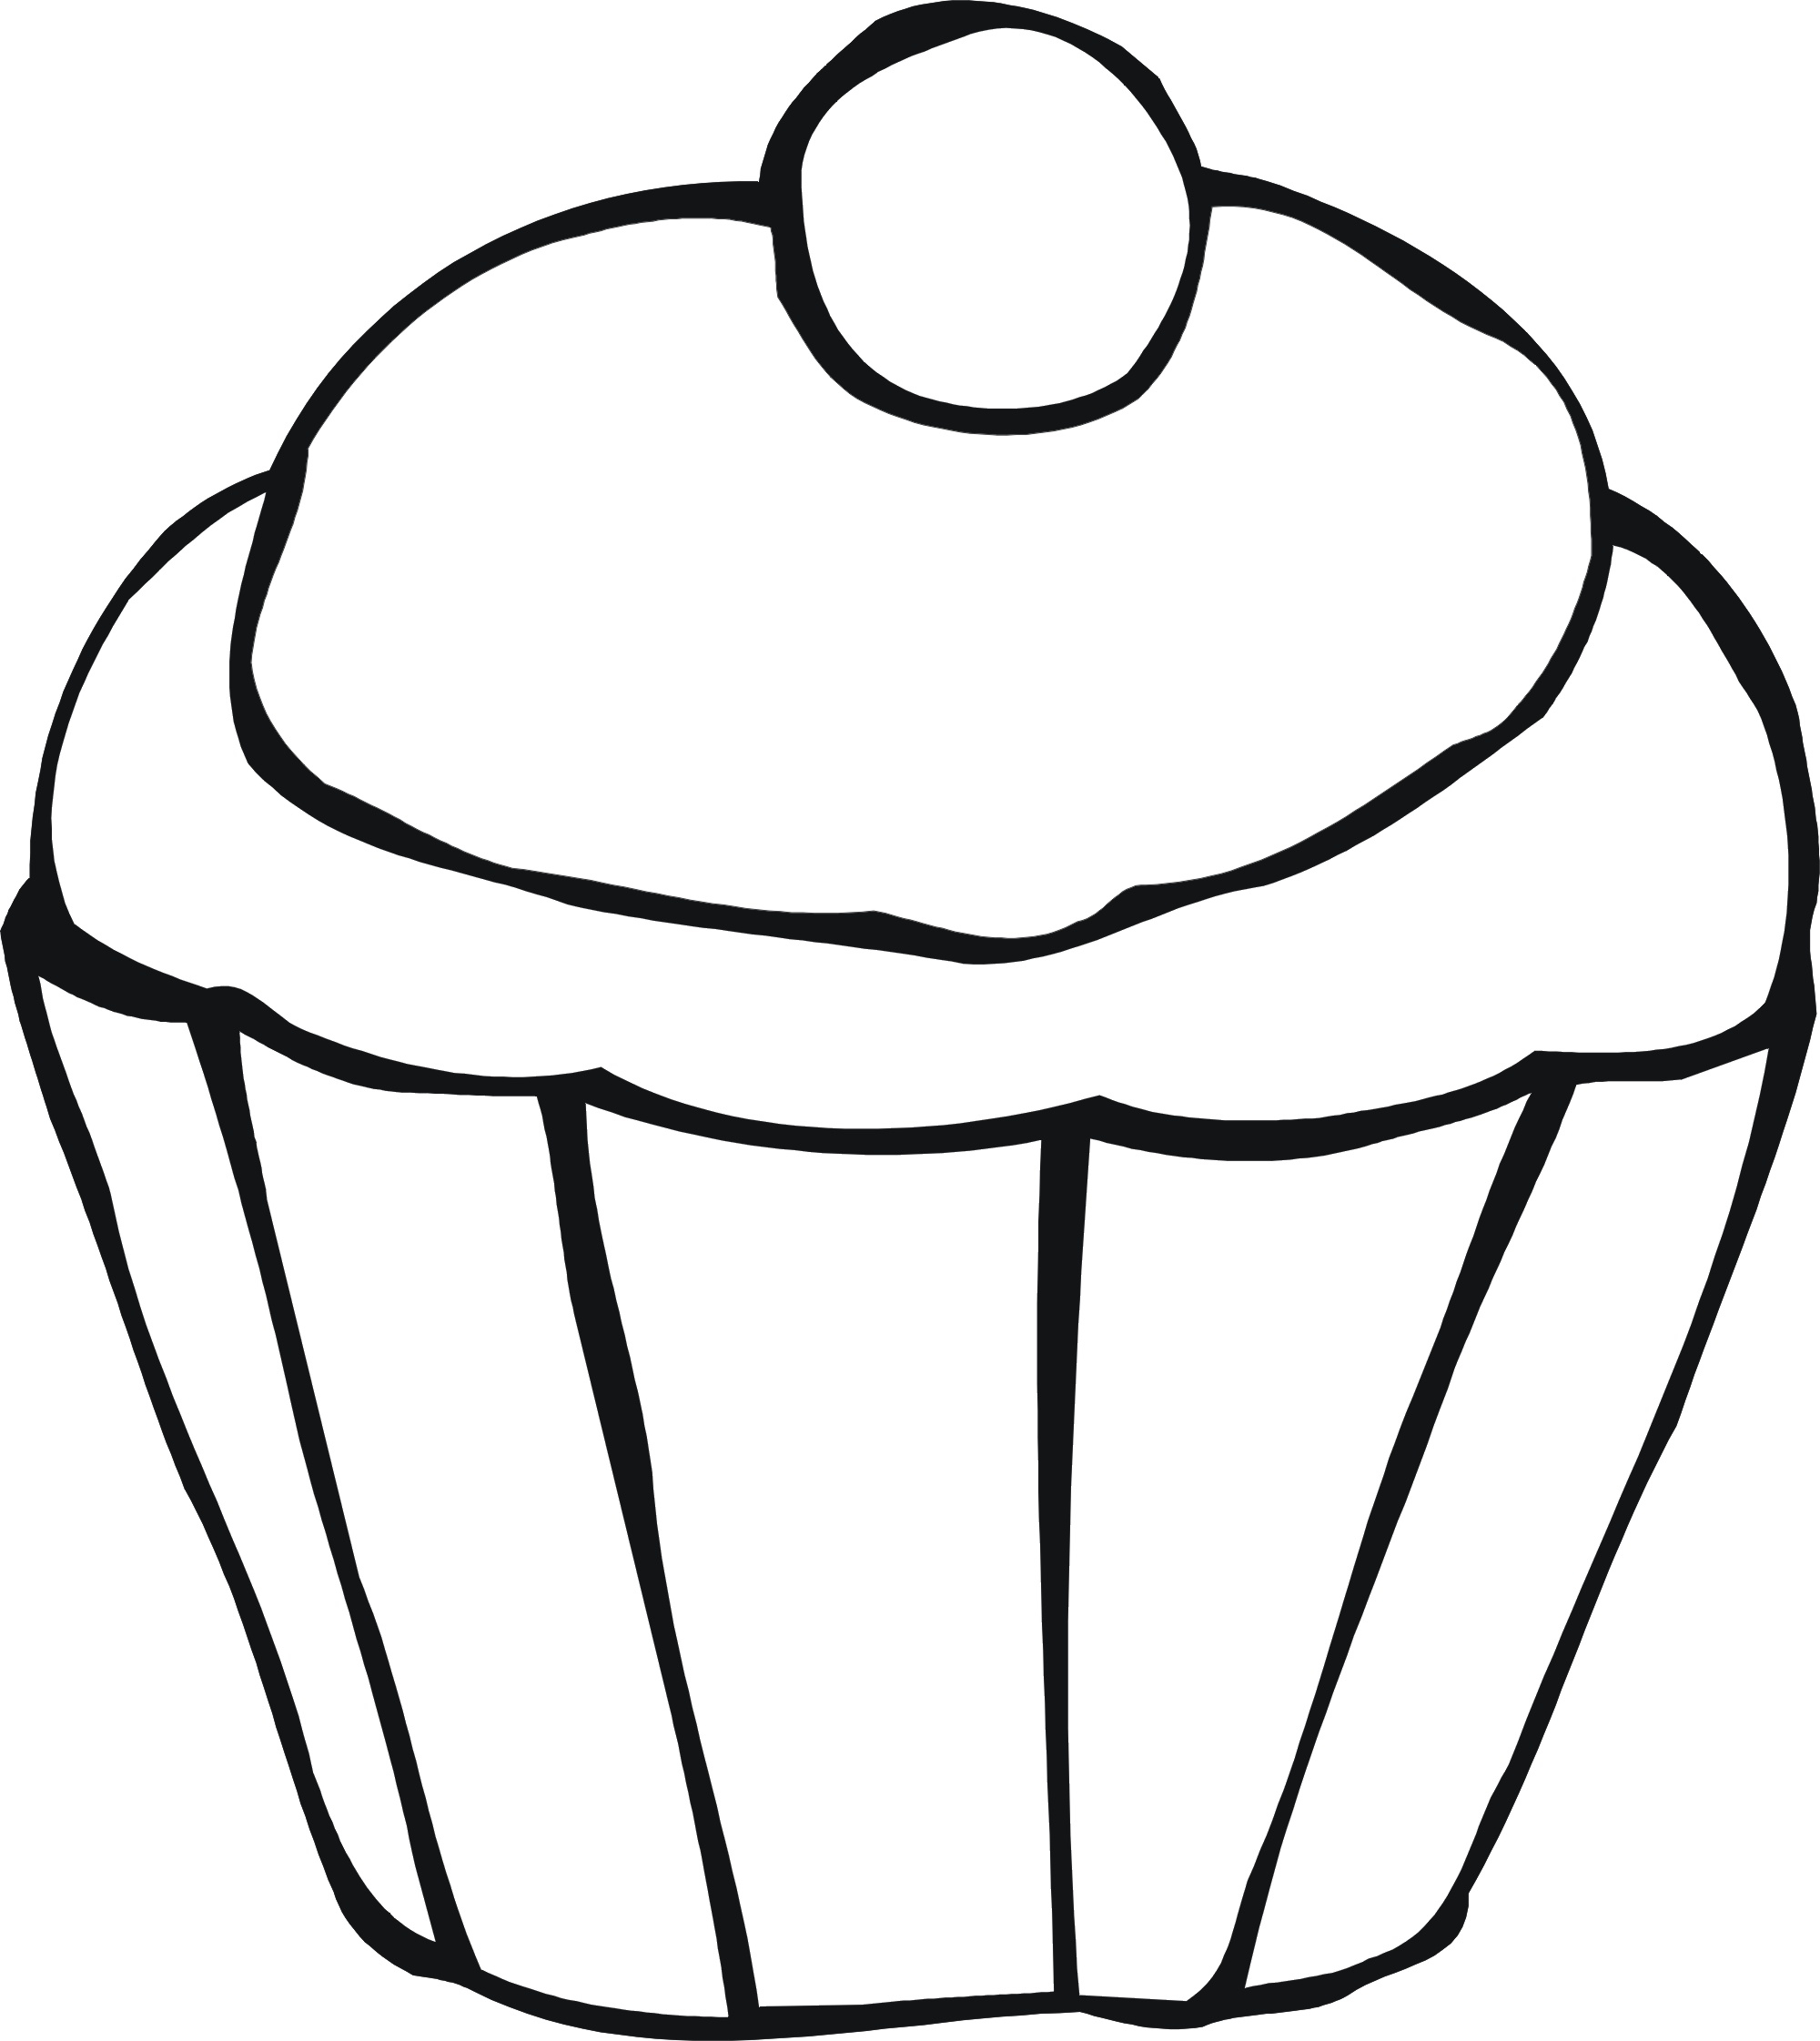 Coloring Pages : Coloring Pages Excellentrs Printables Gallery Ideas - Free Printable Coloring Pages For Kids